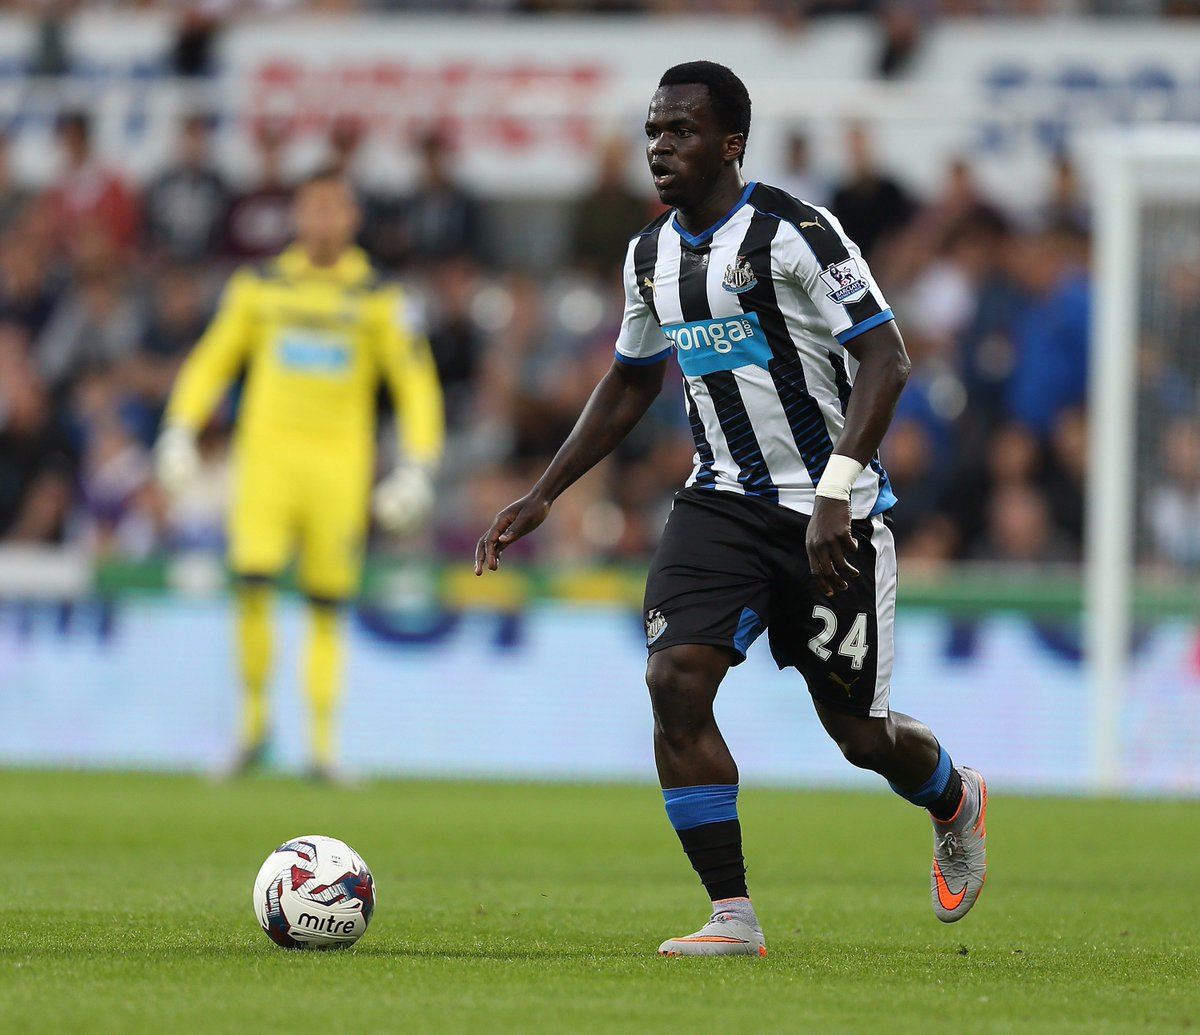 Everyone at the club is saddened to learn of the tragic death of Cheick Tiote. Our thoughts are with his family and friends.